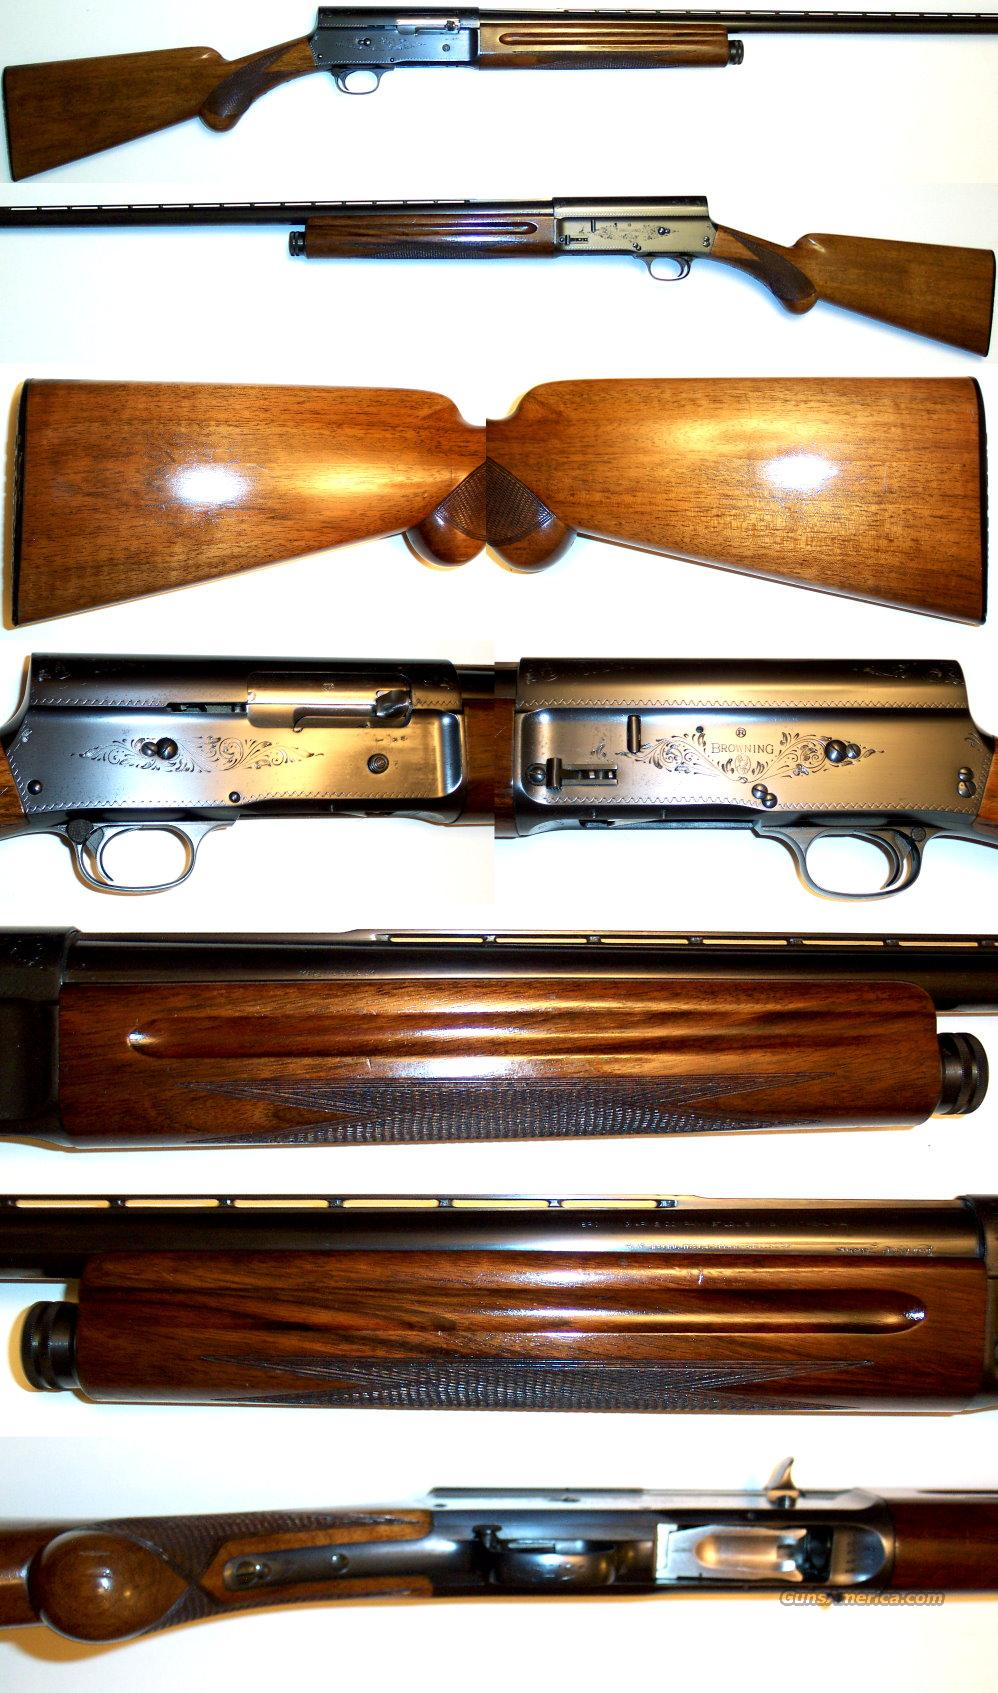 '59 Belgium Browning A5 12 gauge  Guns > Shotguns > Browning Shotguns > Autoloaders > Hunting